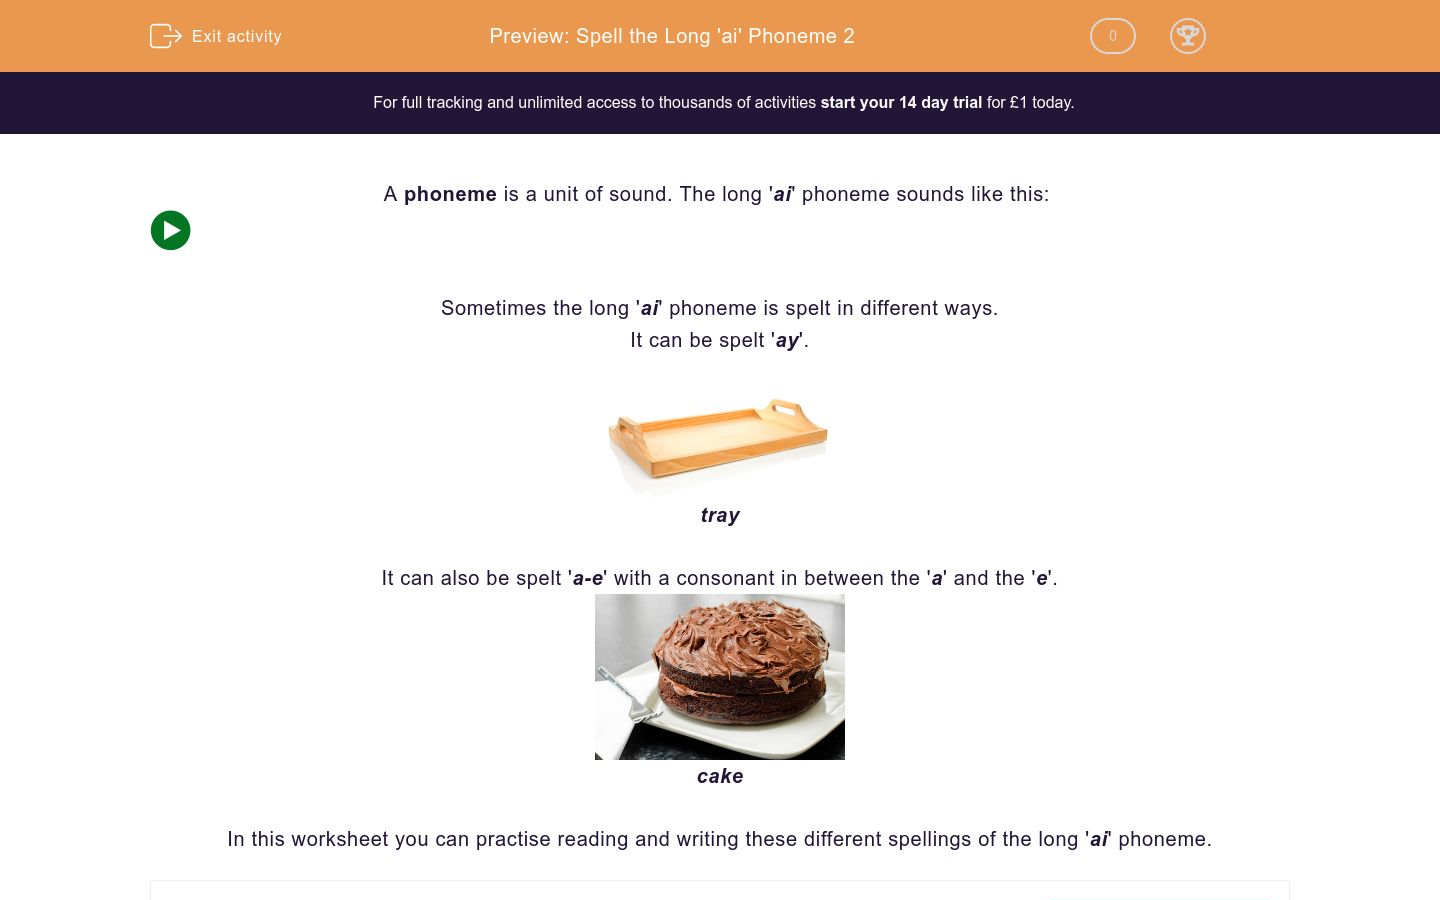 'Spell the Long 'ai' Phoneme 2' worksheet